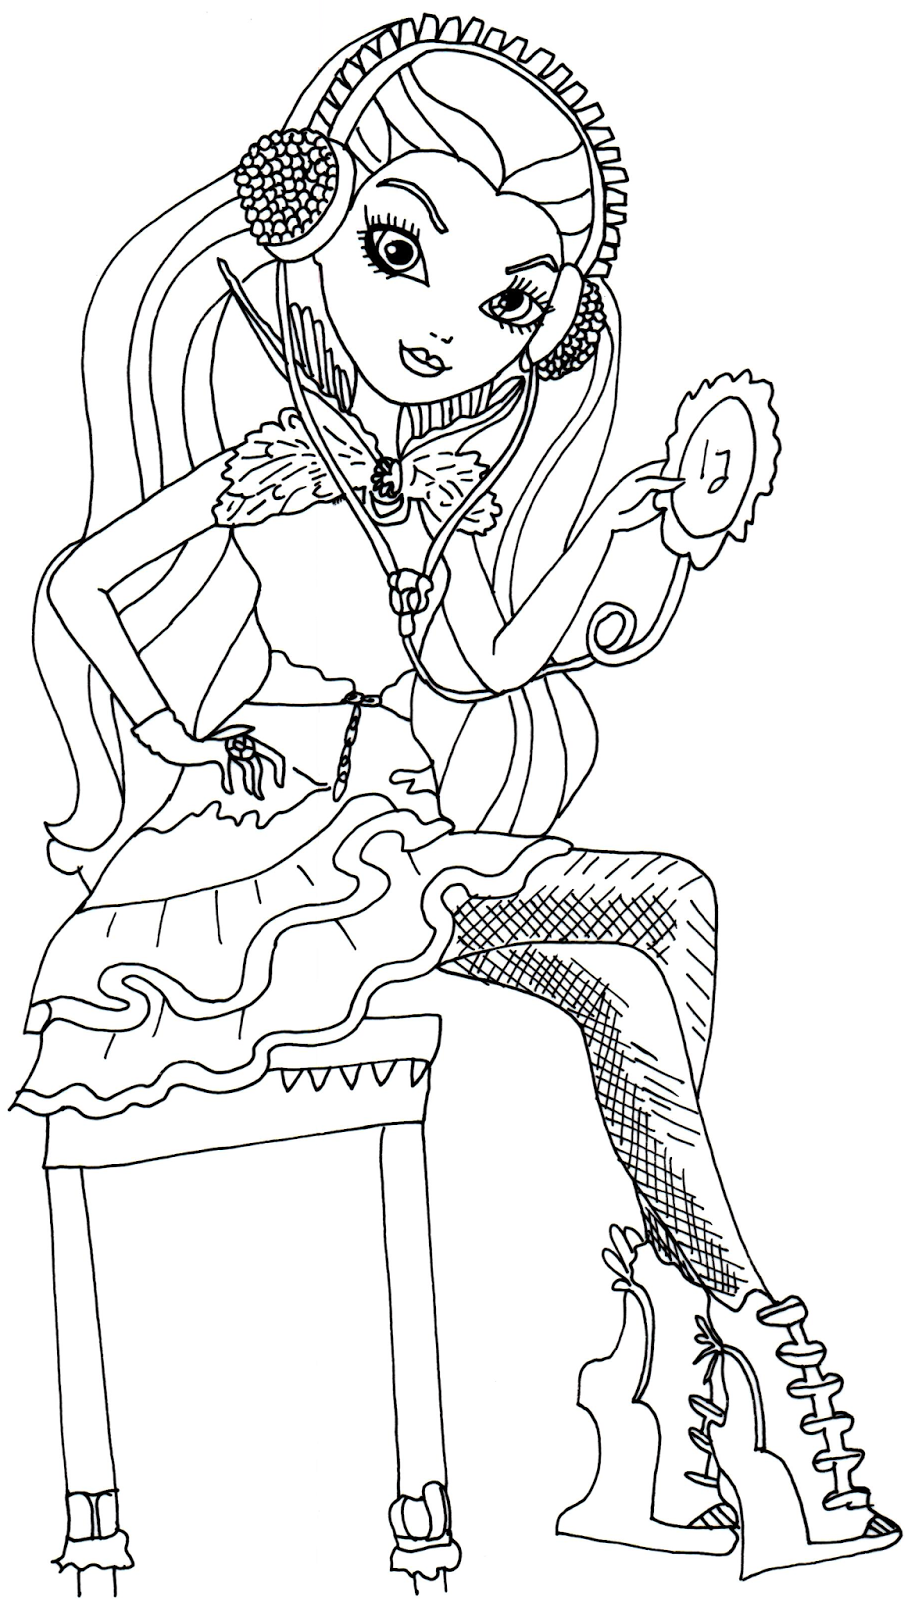 free ever after high coloring pages - free printable ever after high coloring pages december 2013